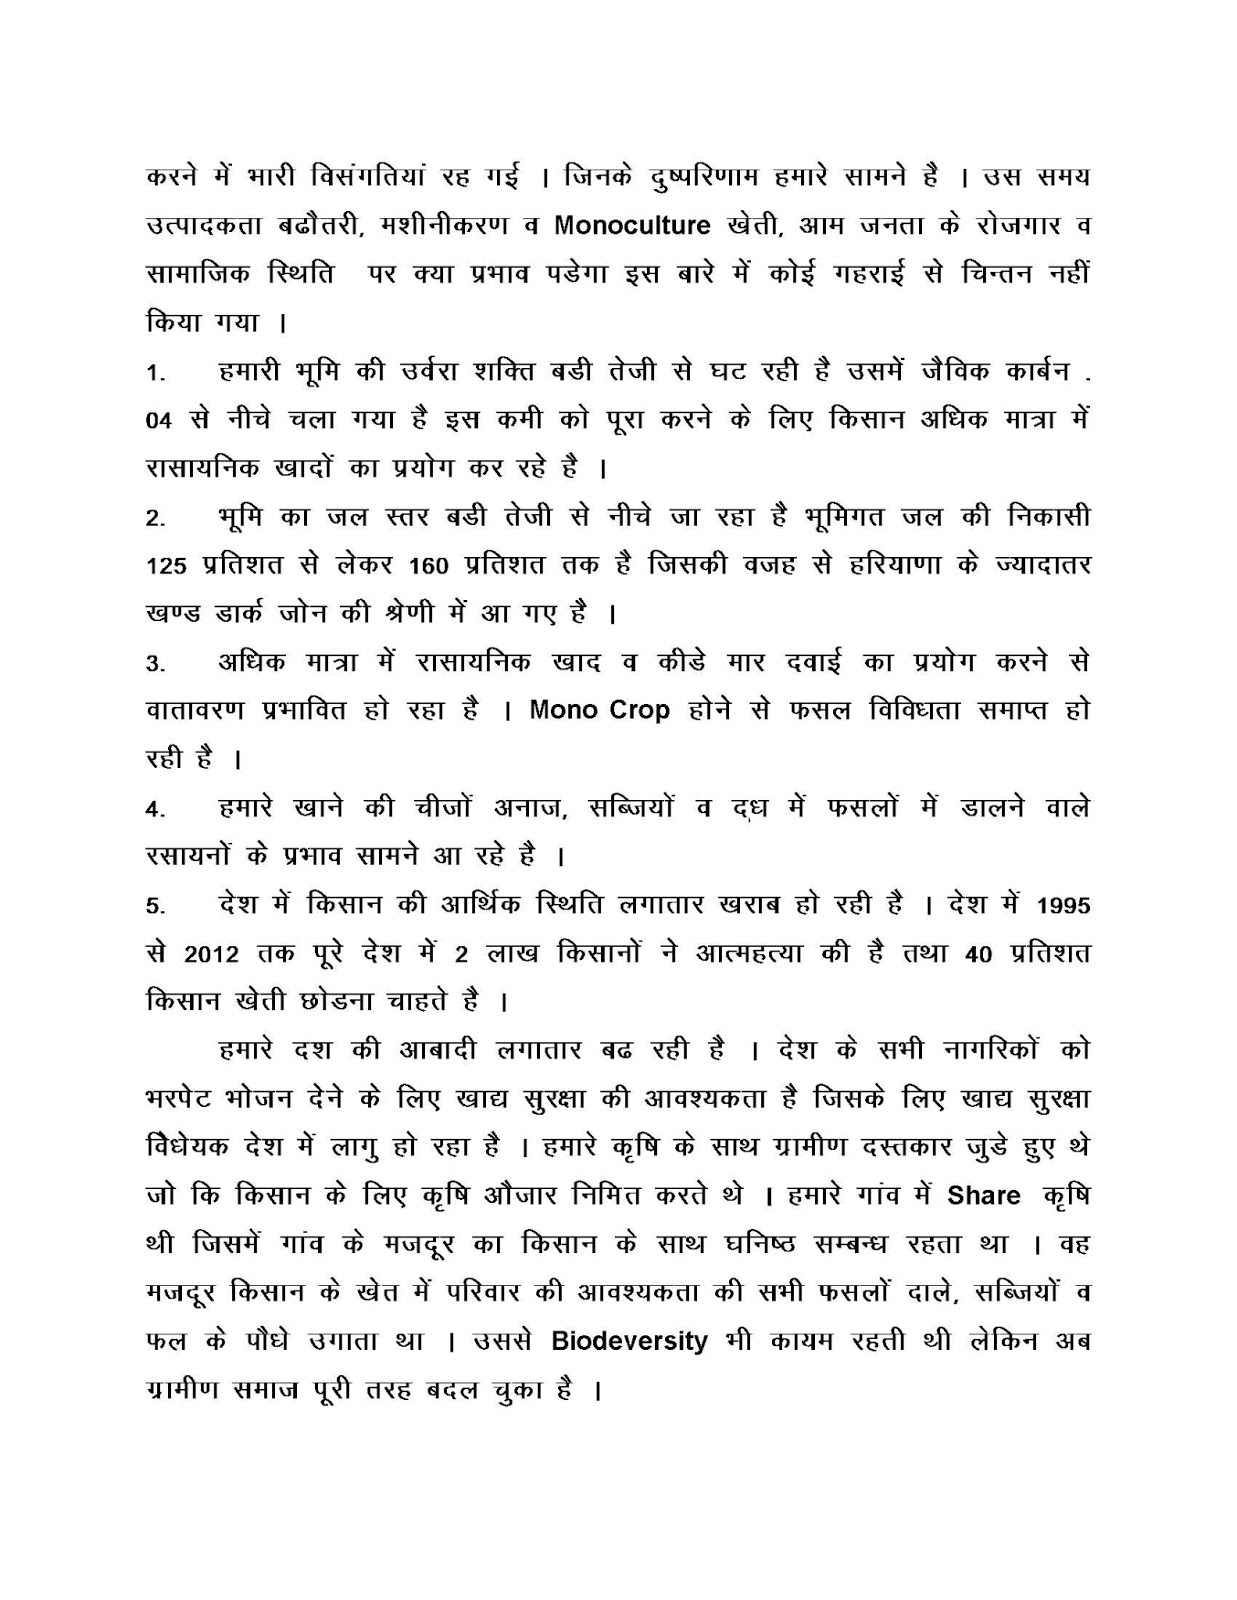 Importance of hard work essay in marathi language